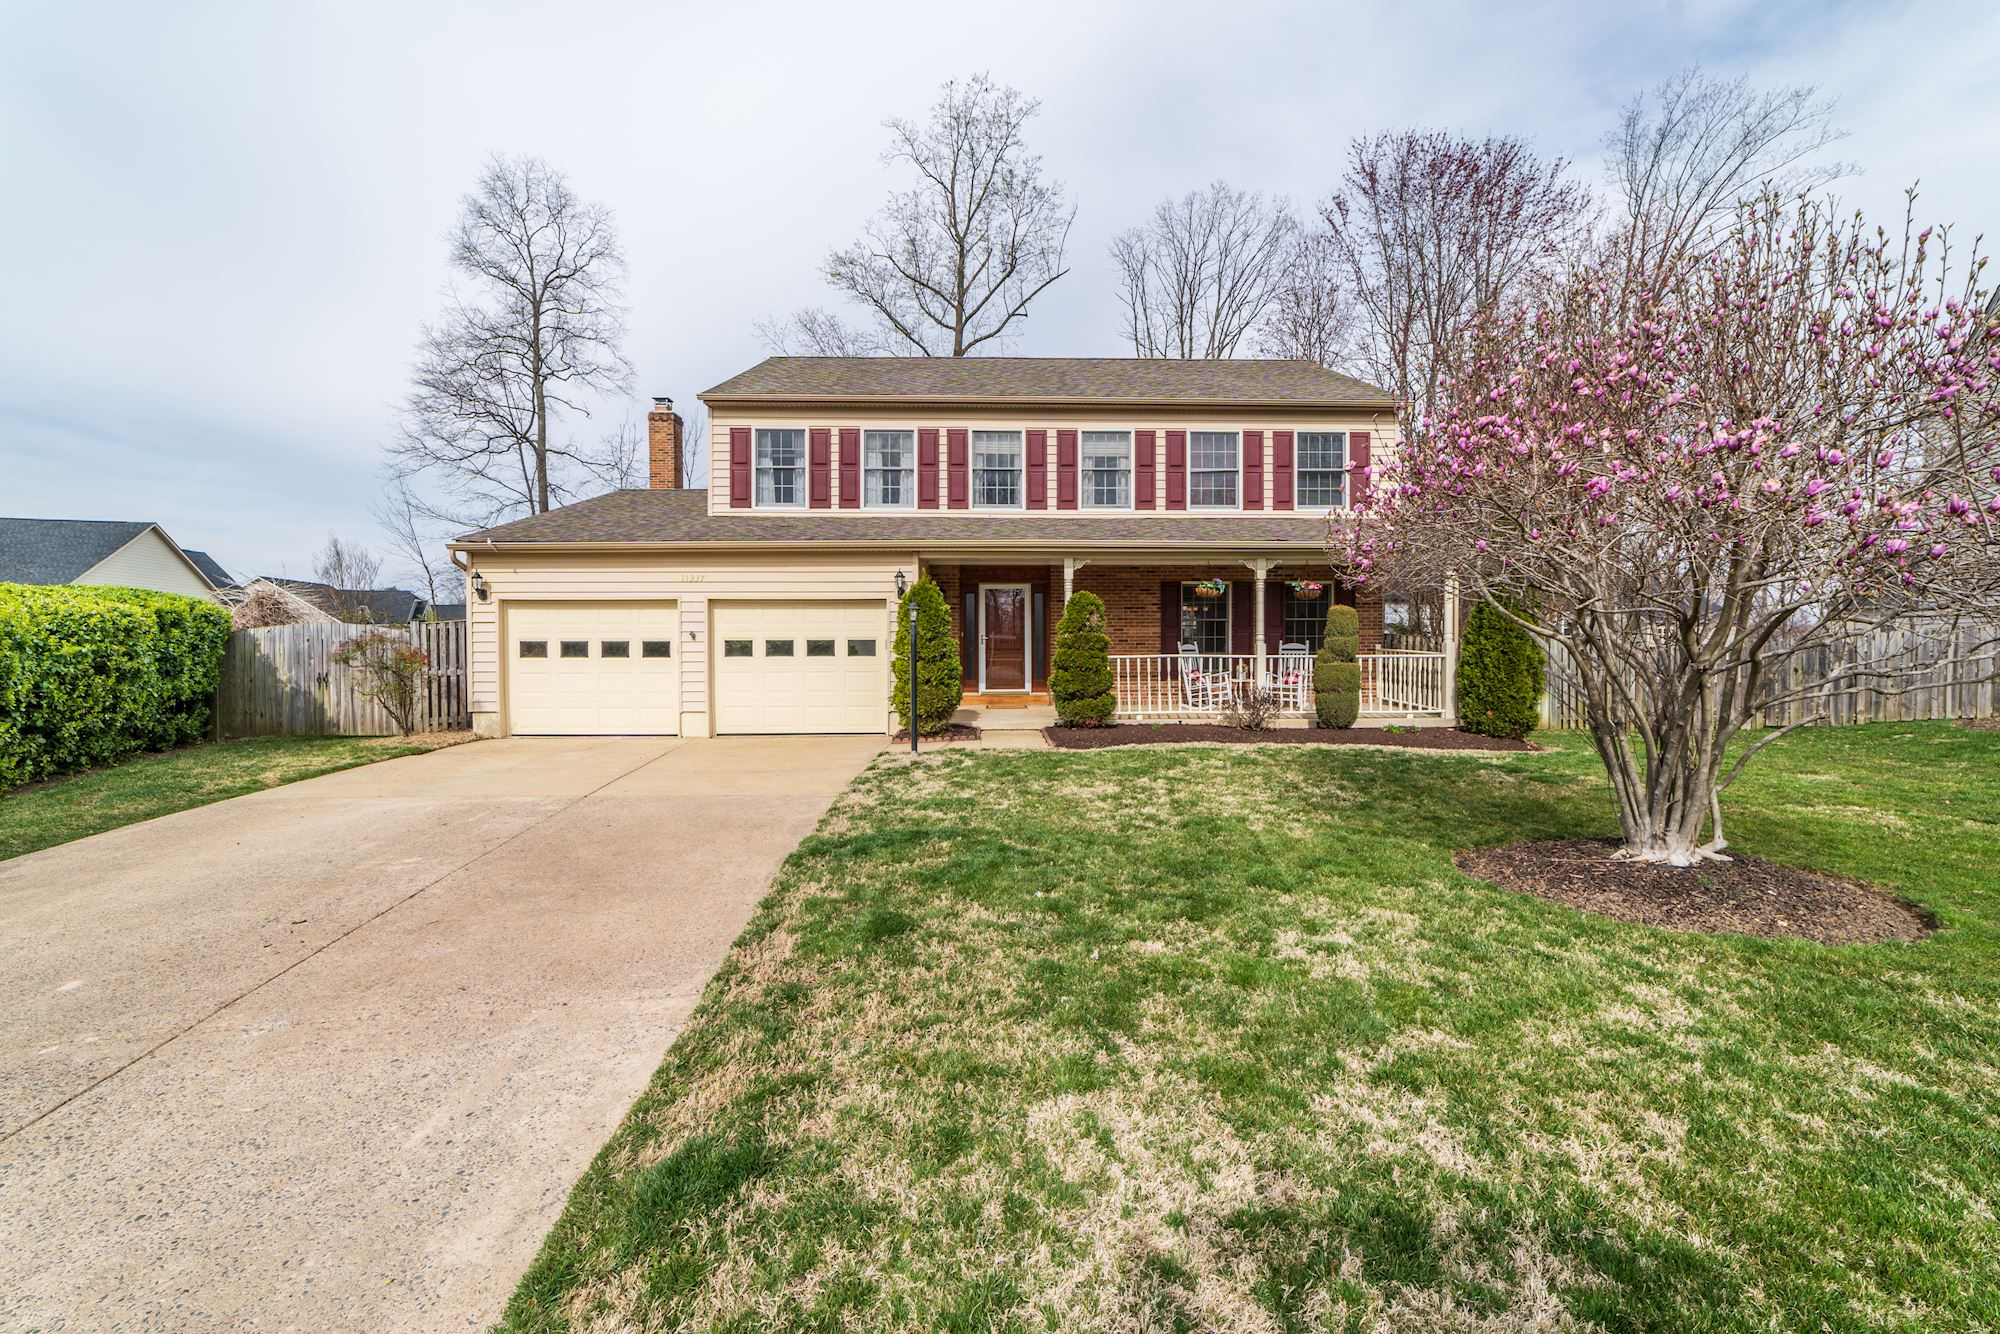 UNDER CONTRACT: 4 BD Updated Colonial in Fairfax, VA